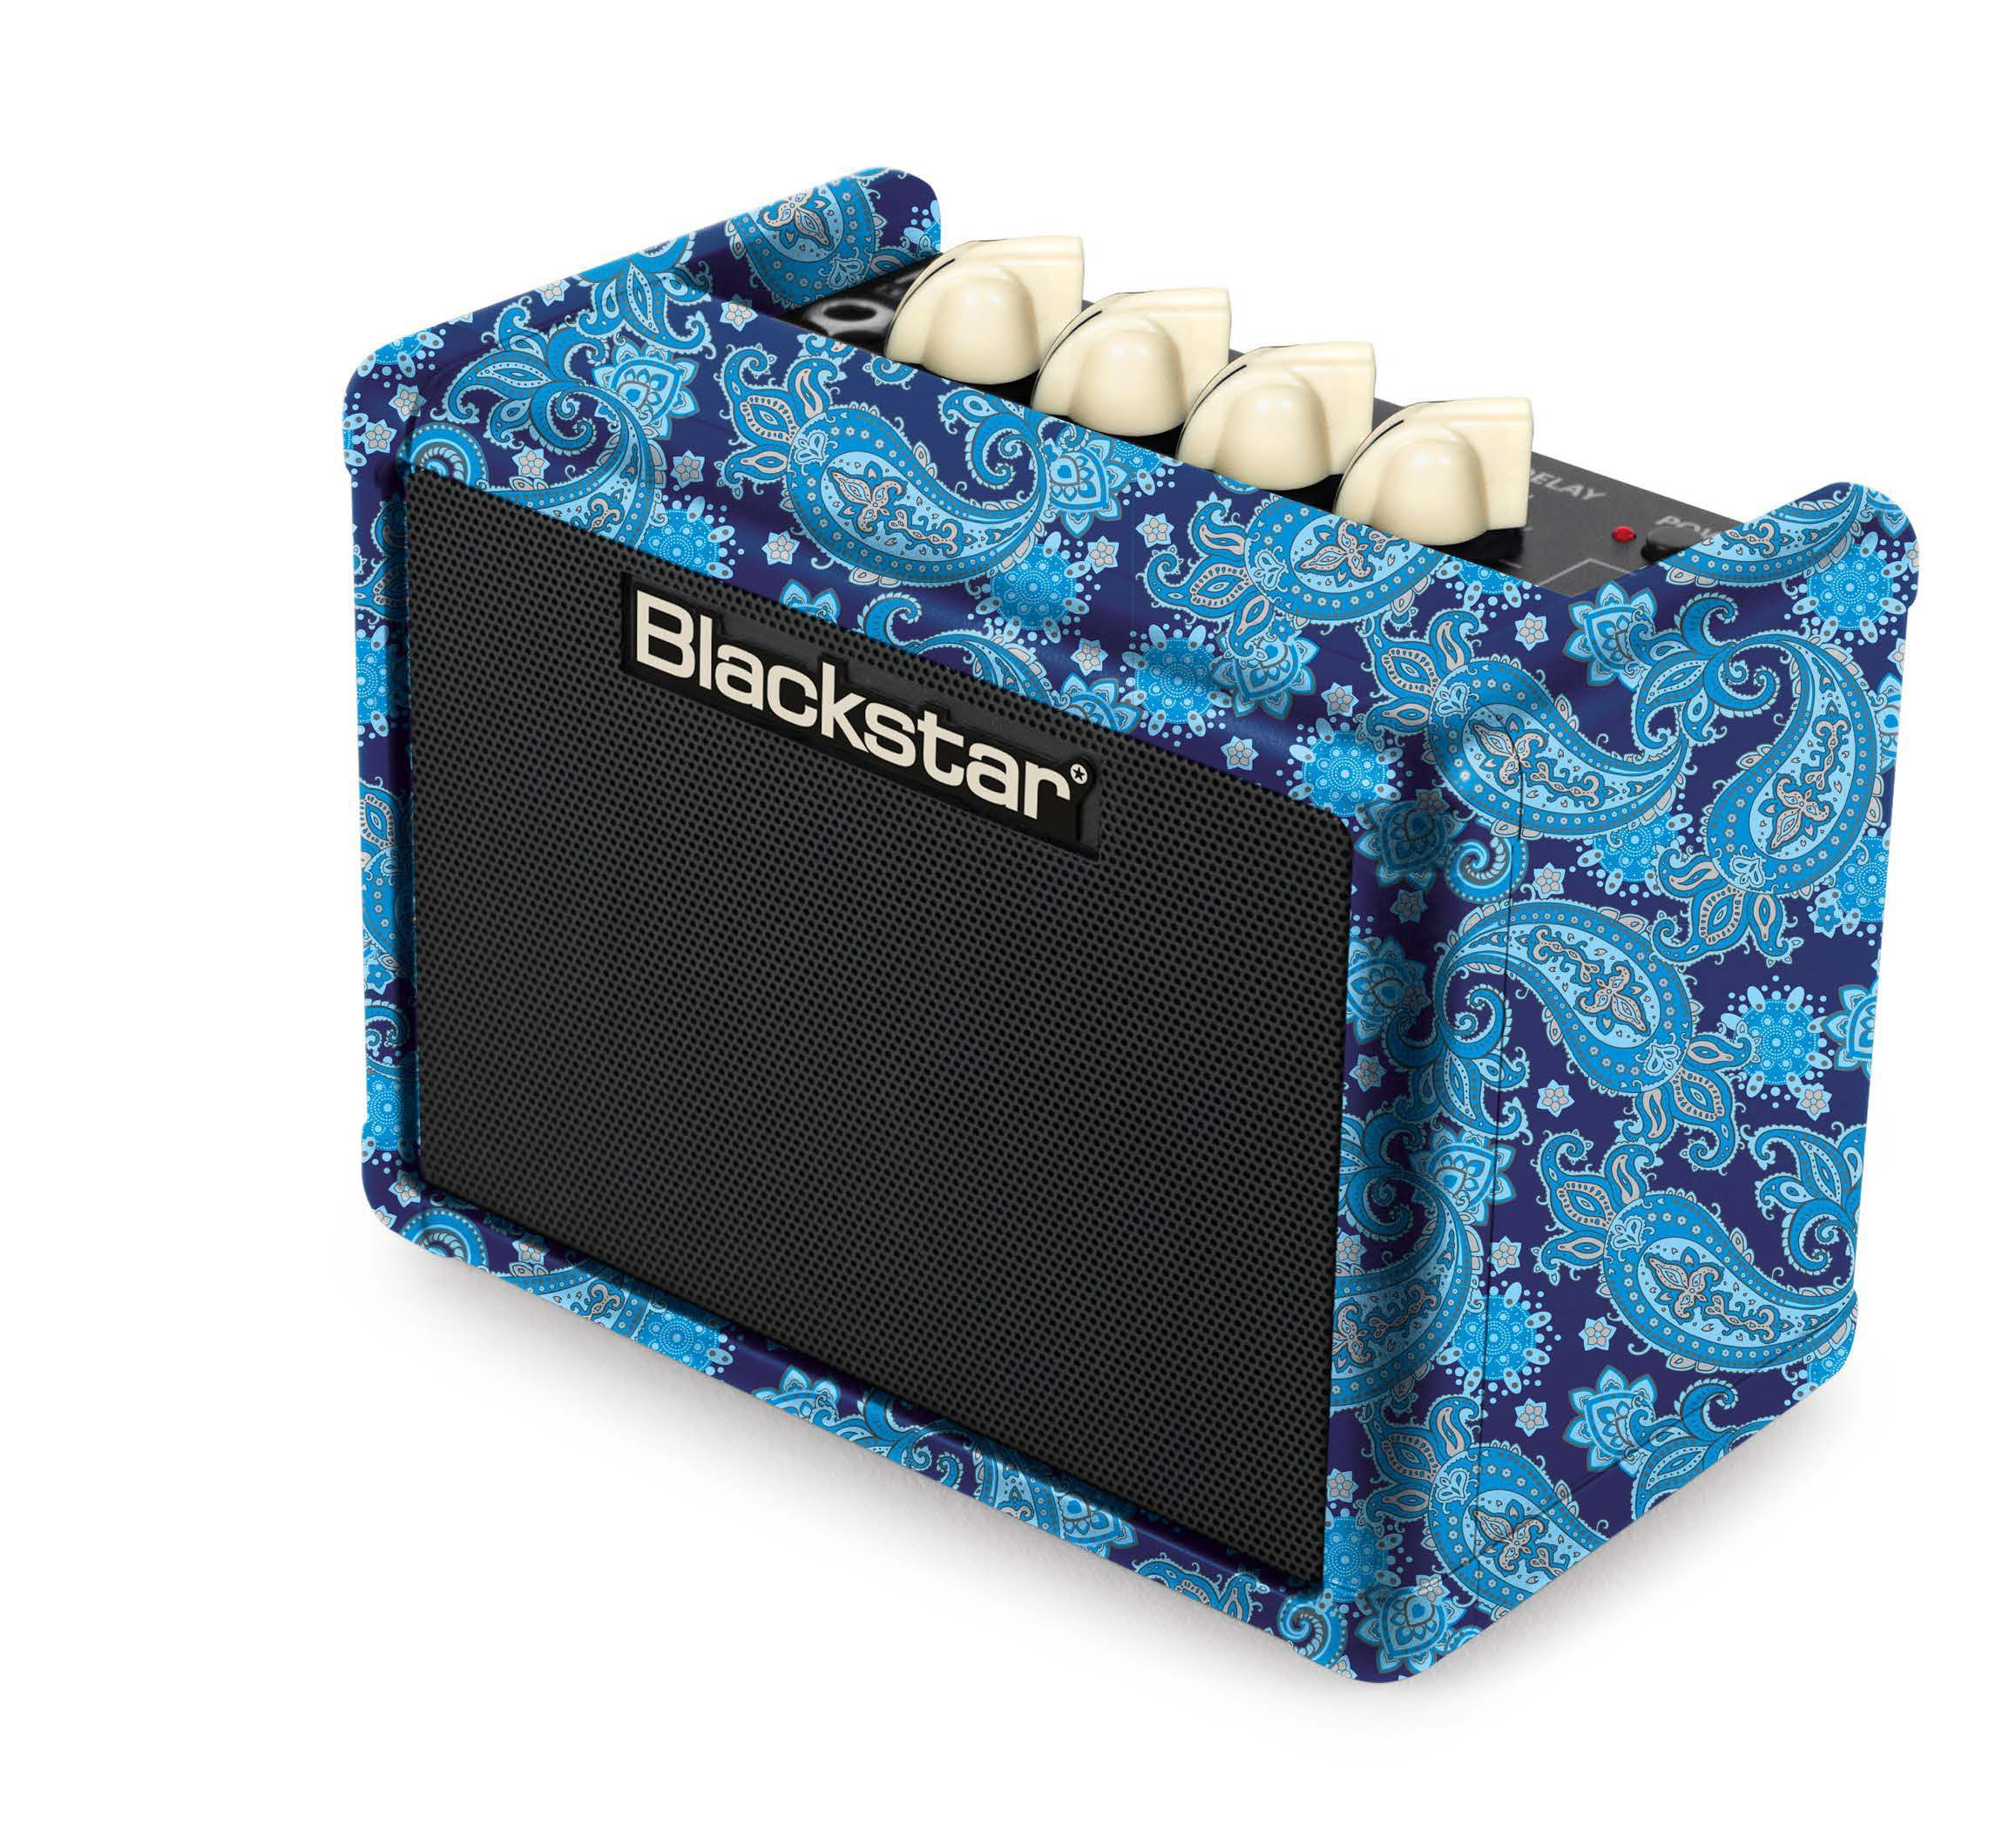 Blackstar Fly 3 Blue Paisley